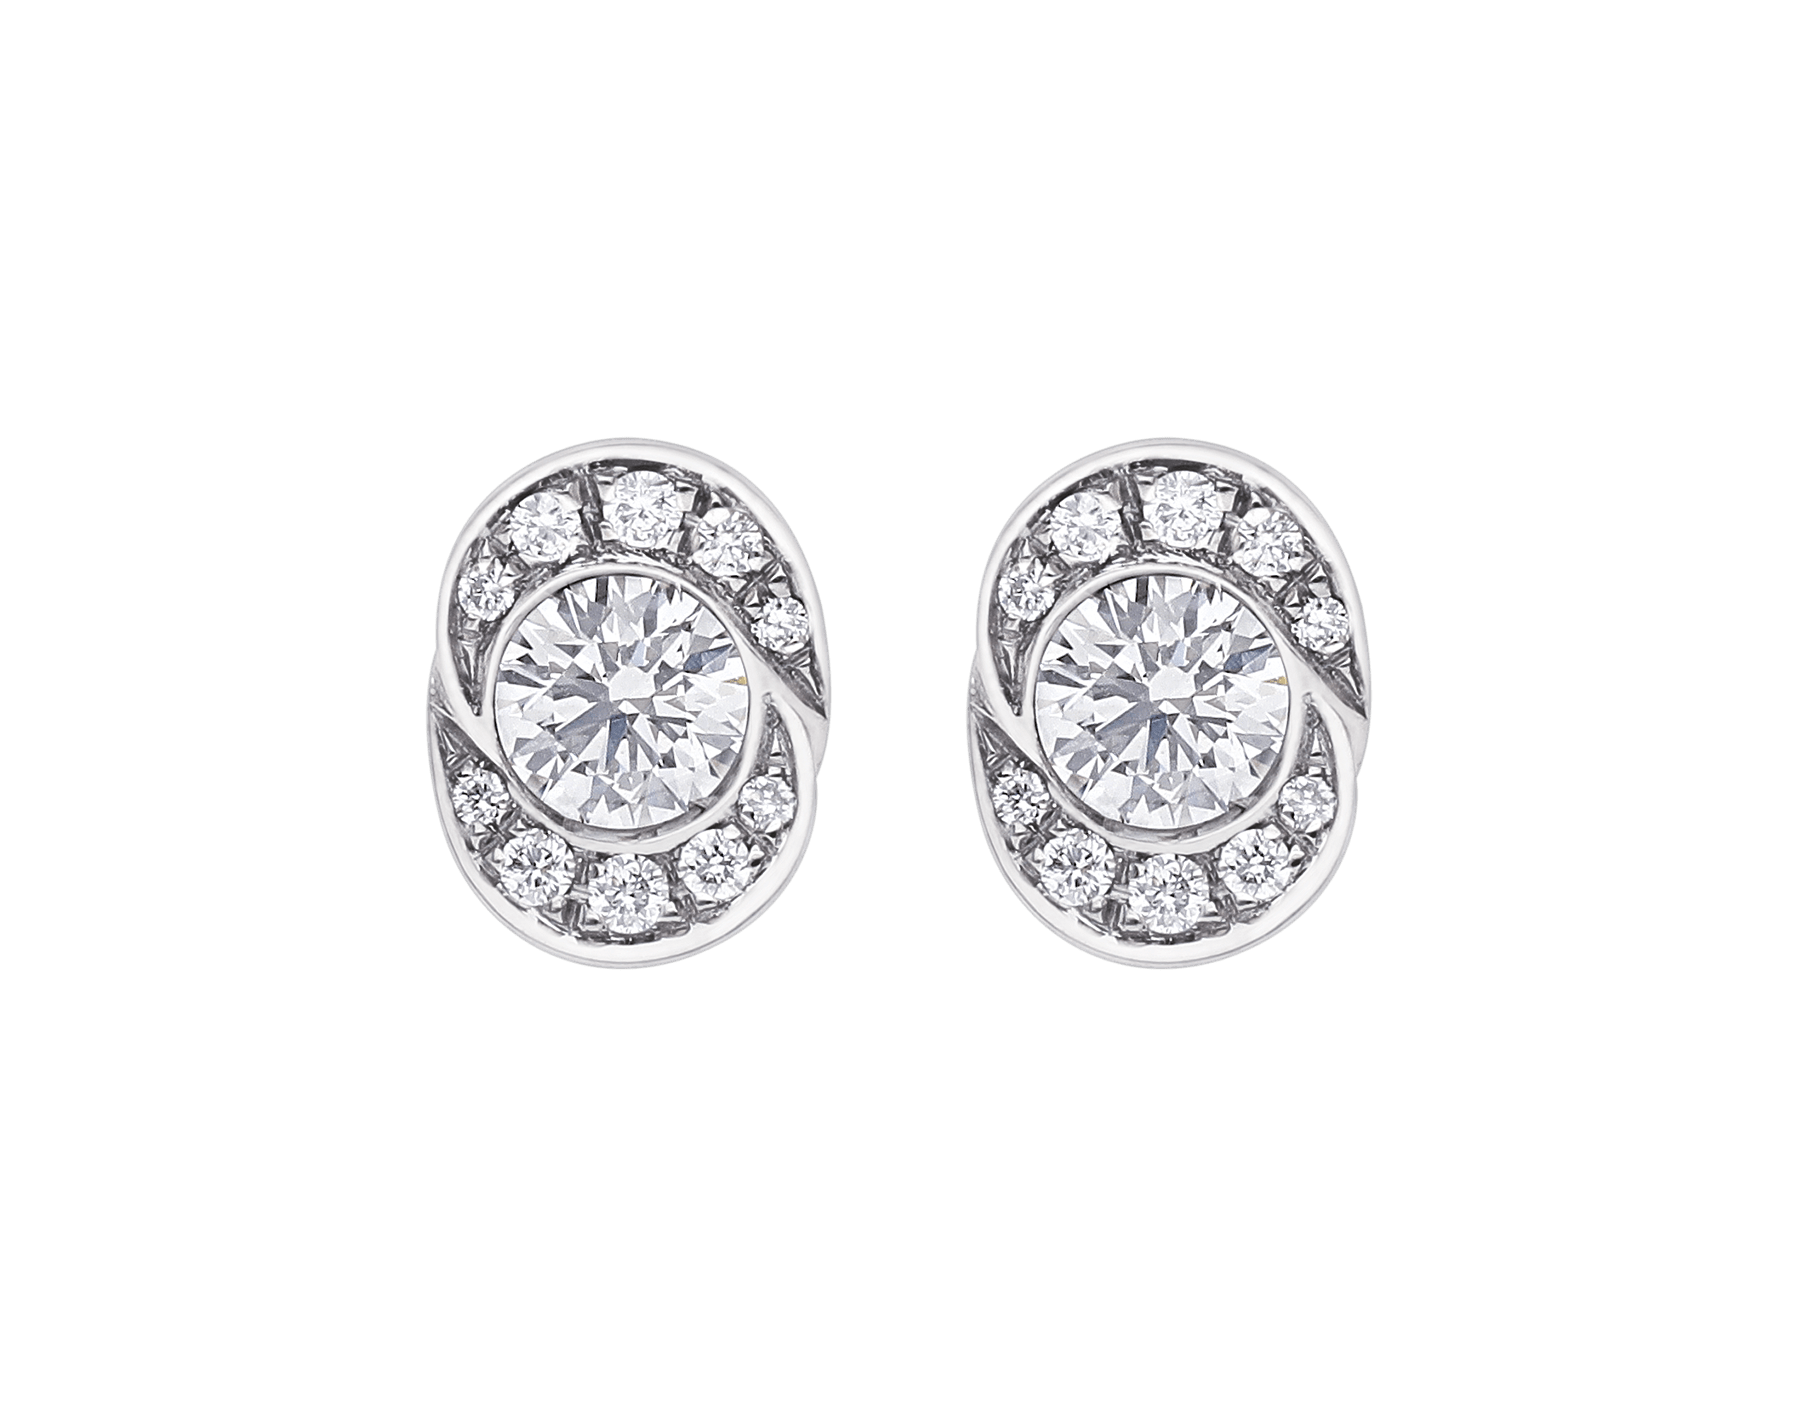 Incontro d'Amore earrings in 18 kt white gold set with two central diamonds and pavé diamonds. 355250 image 1